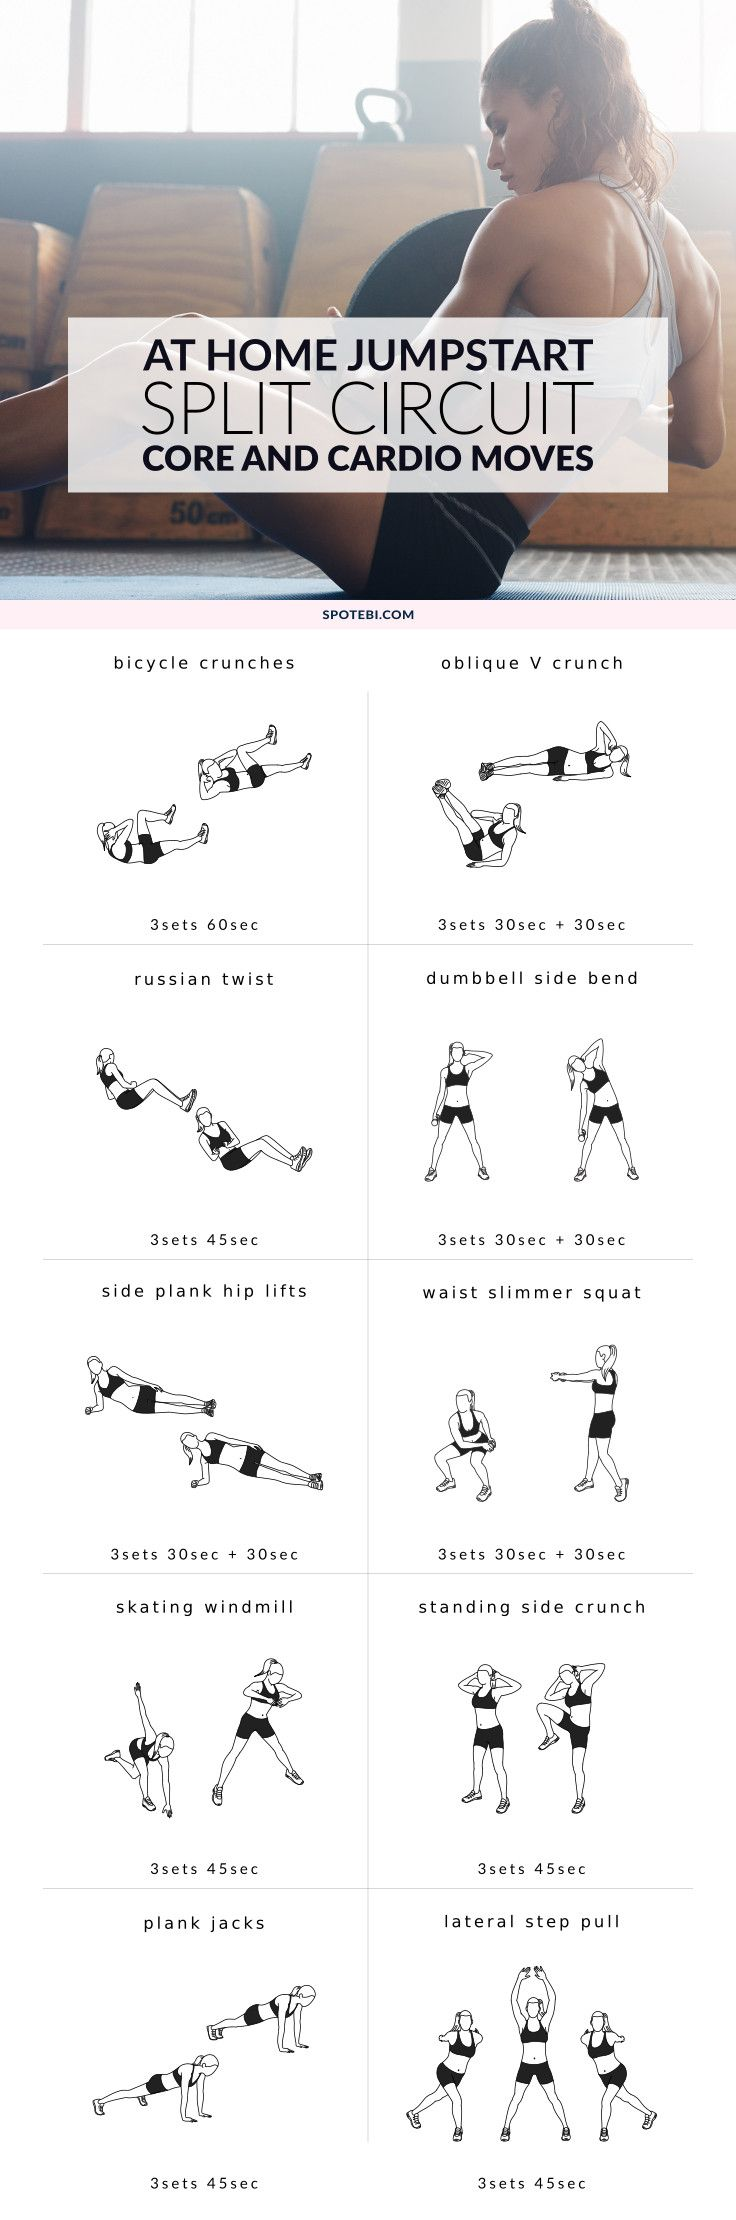 Work your abs, obliques, and the transverse abdominals to slim down your waist and sculpt a tight, toned tummy. This core and cardio split circuit will help burn off your belly fat for up to 48 hours after the workout is over! http://www.spotebi.com/workout-routines/core-cardio-split-workout/